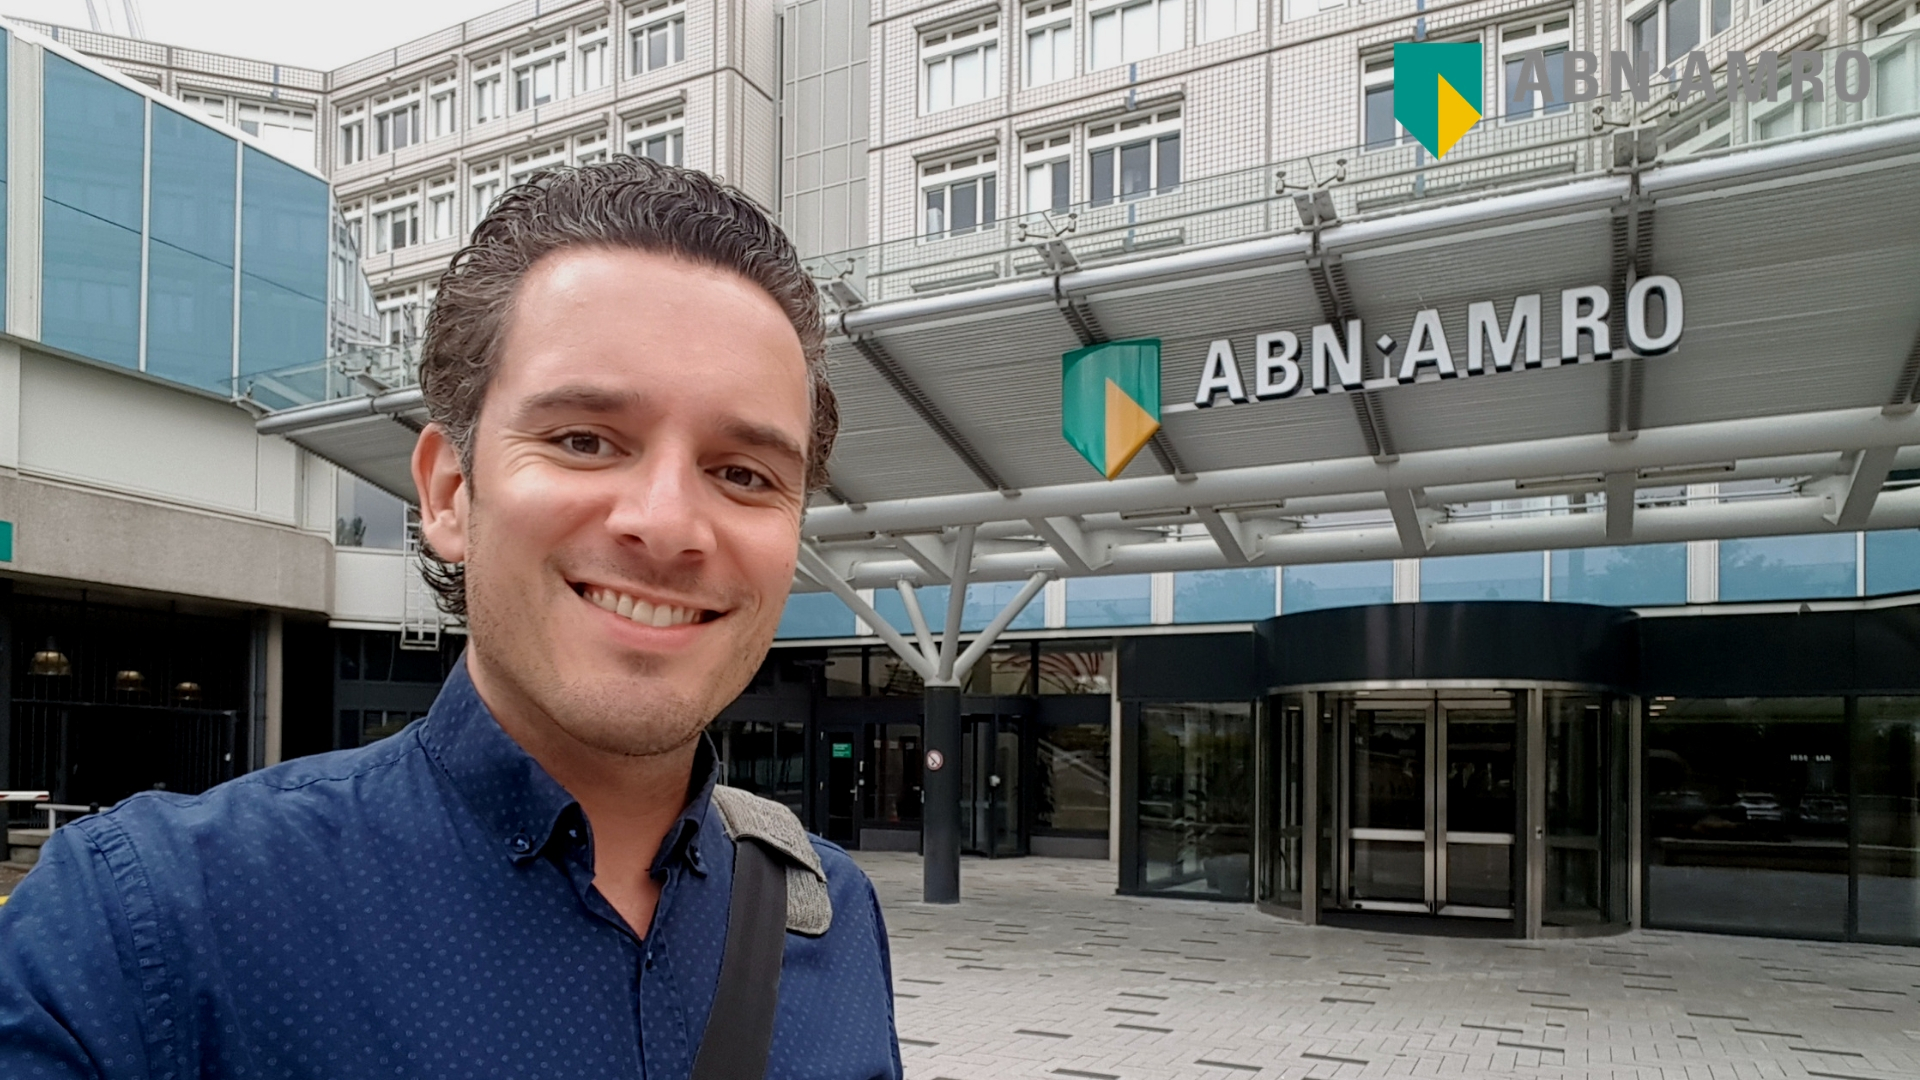 ABN AMRO - Project Senior Implementatie Consultant - Jerry van Staveren